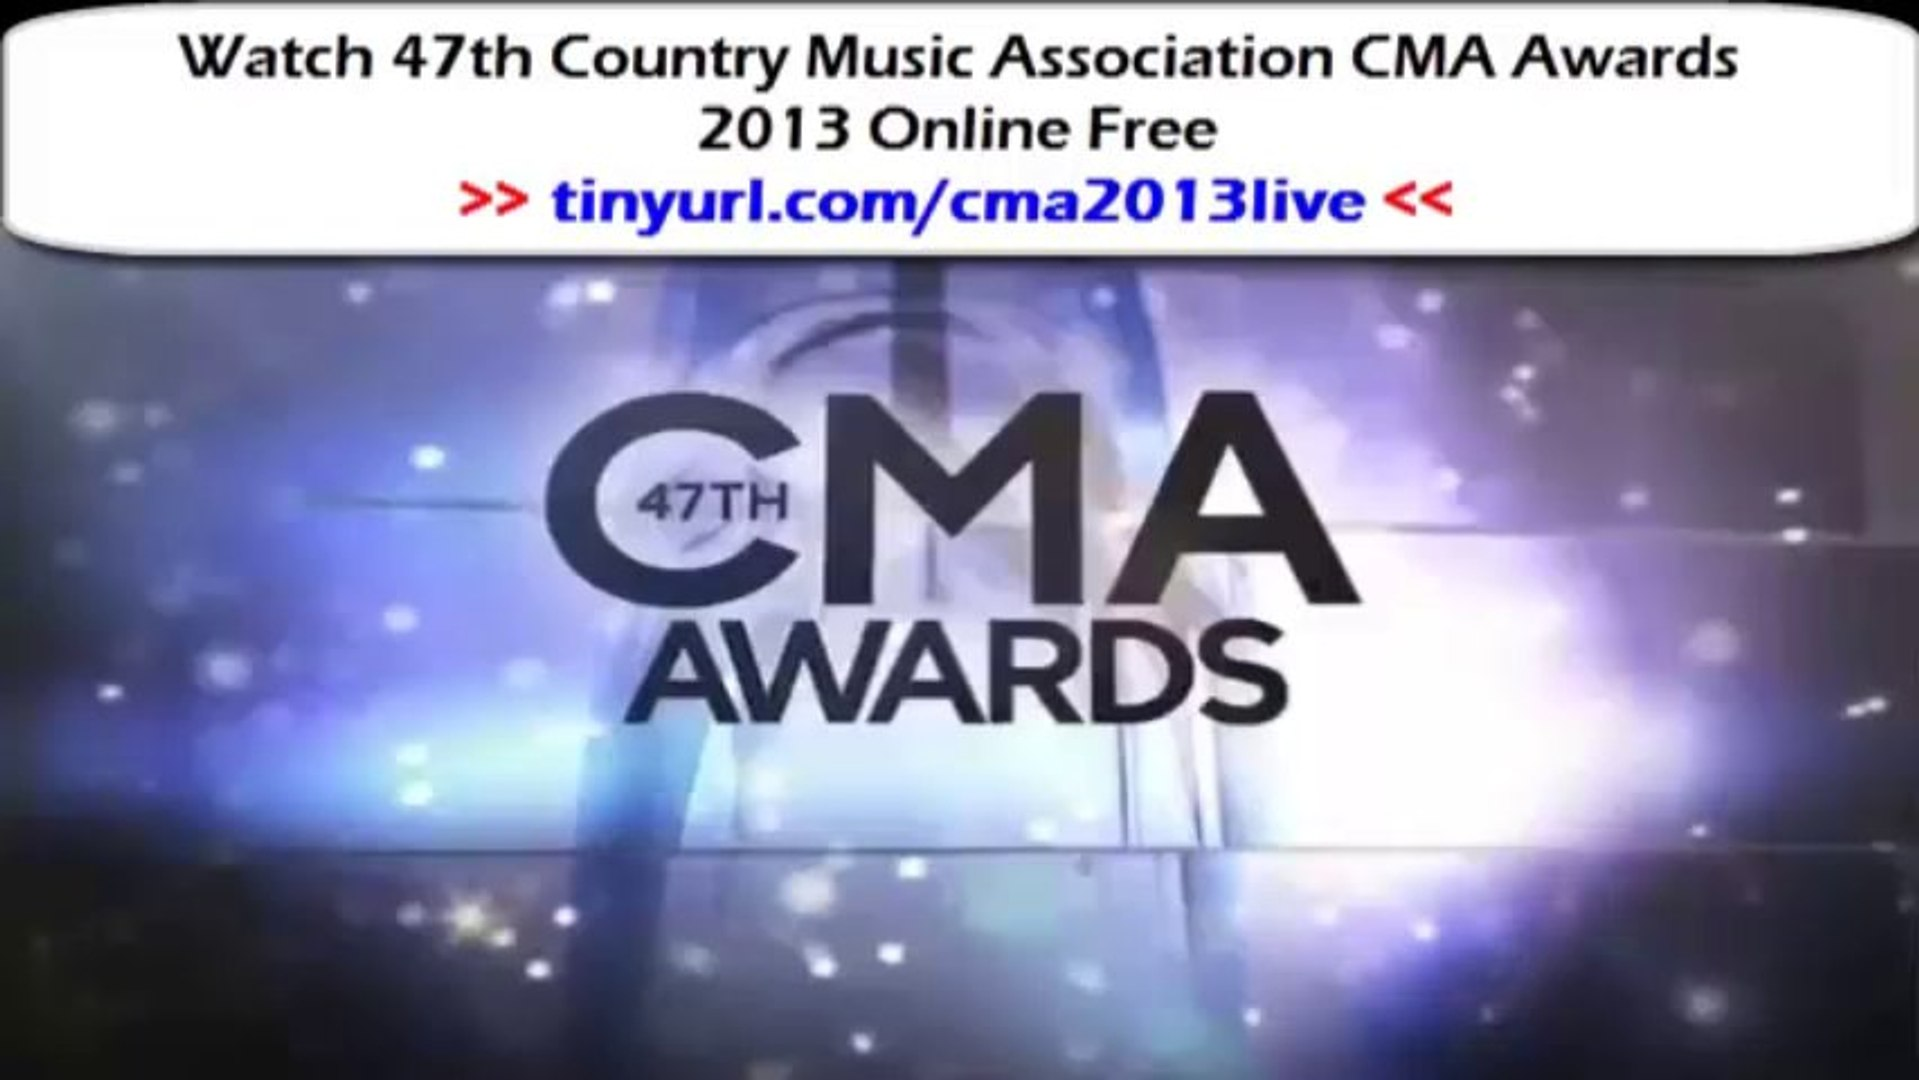 Watch 47th Country Music Association CMA Awards 2013 Streaming Free!